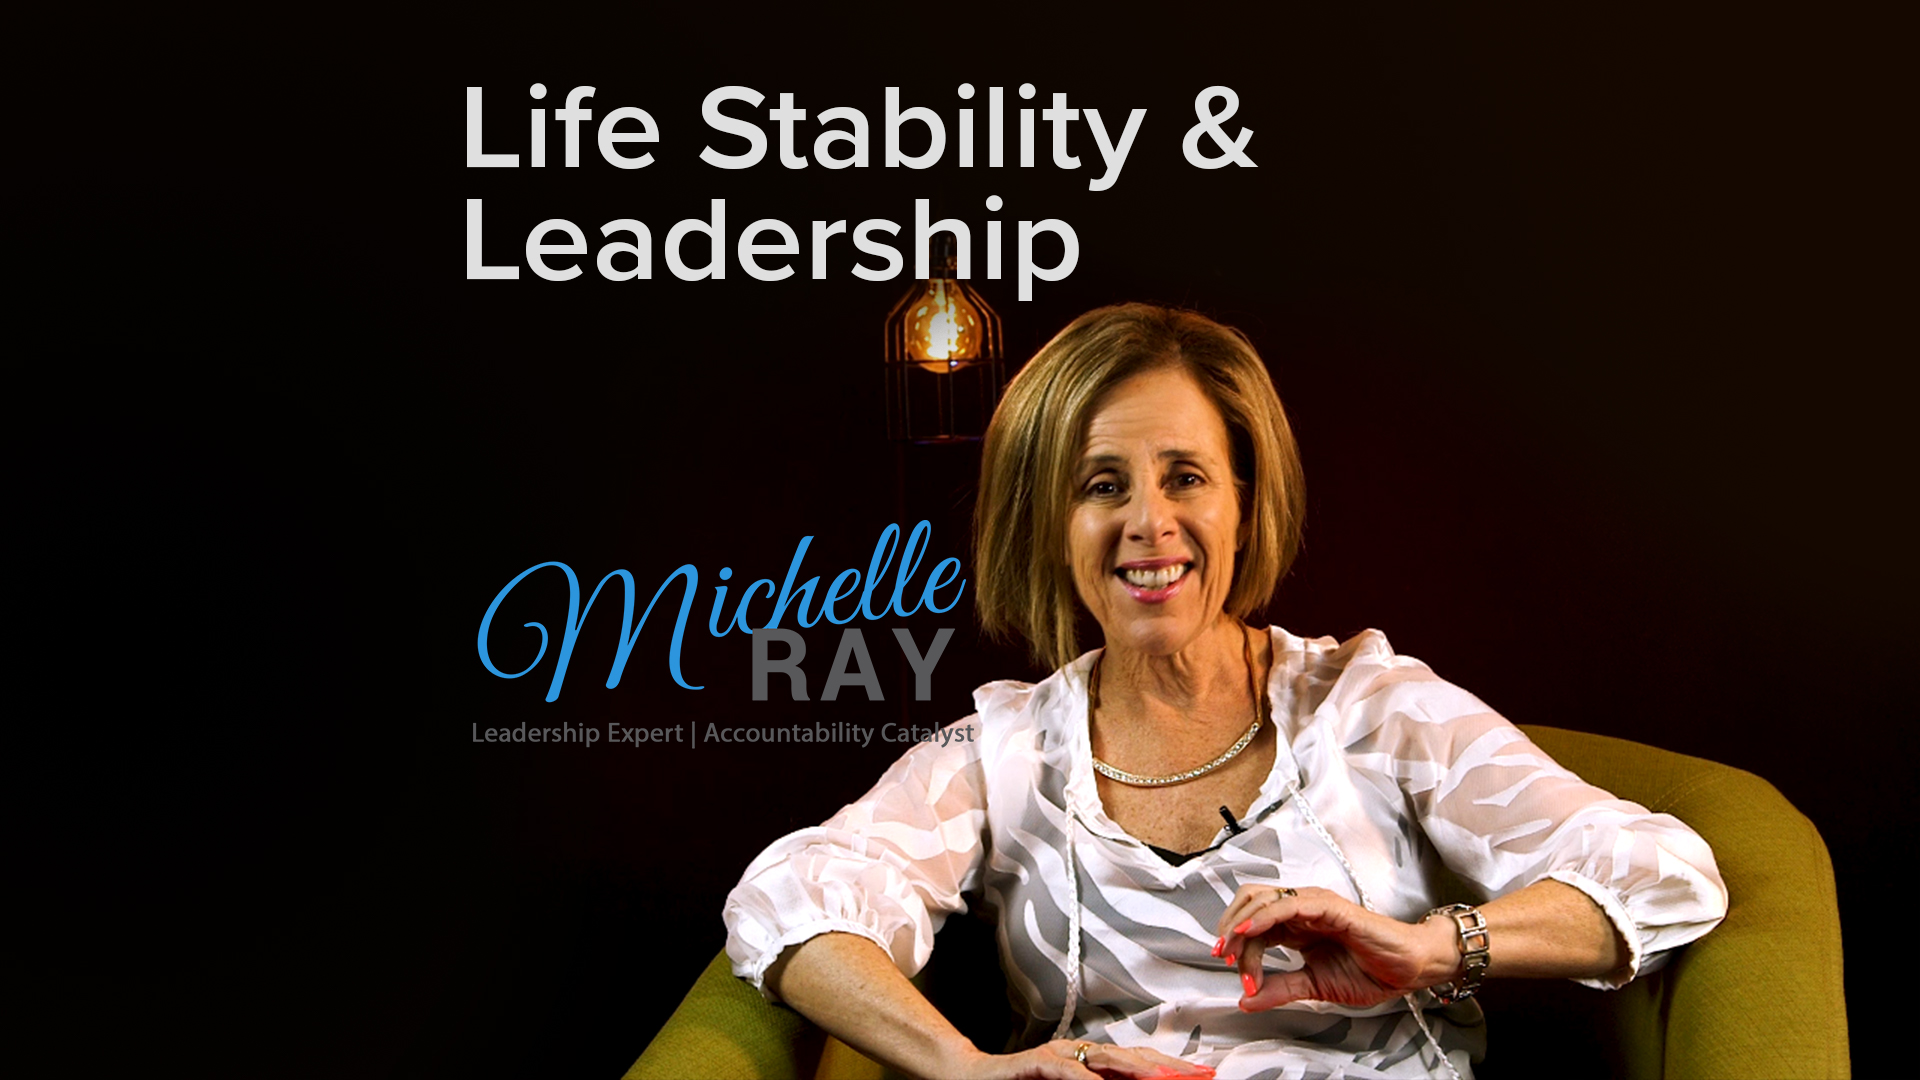 Stable Personal Life and Leadership Ability